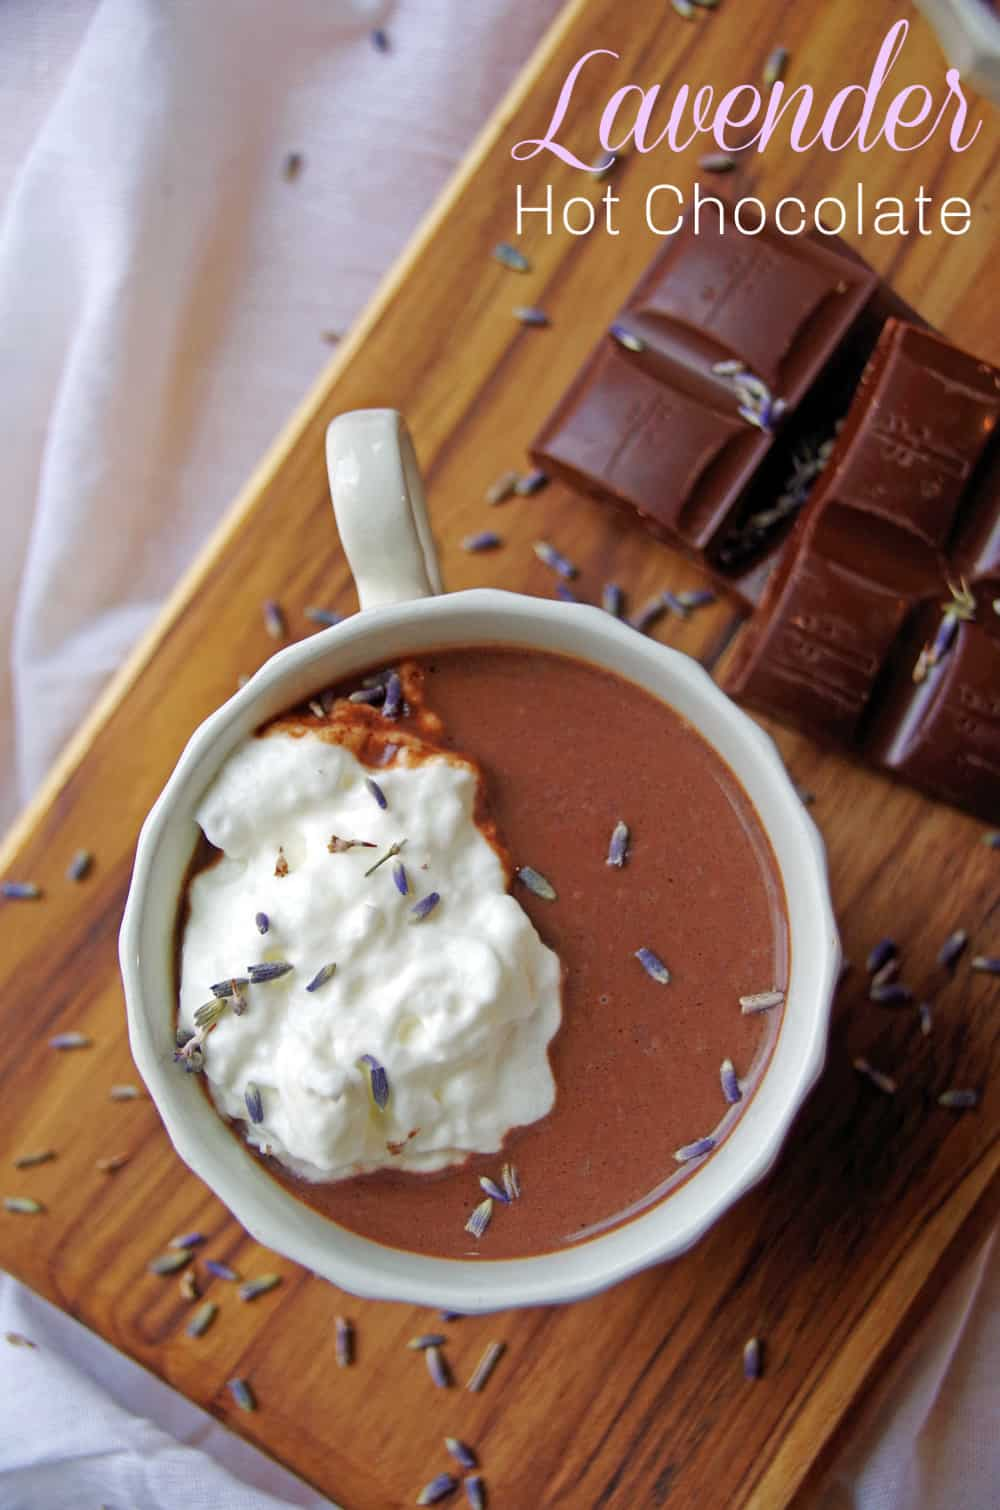 Hot chocolate with whipped cream and lavender